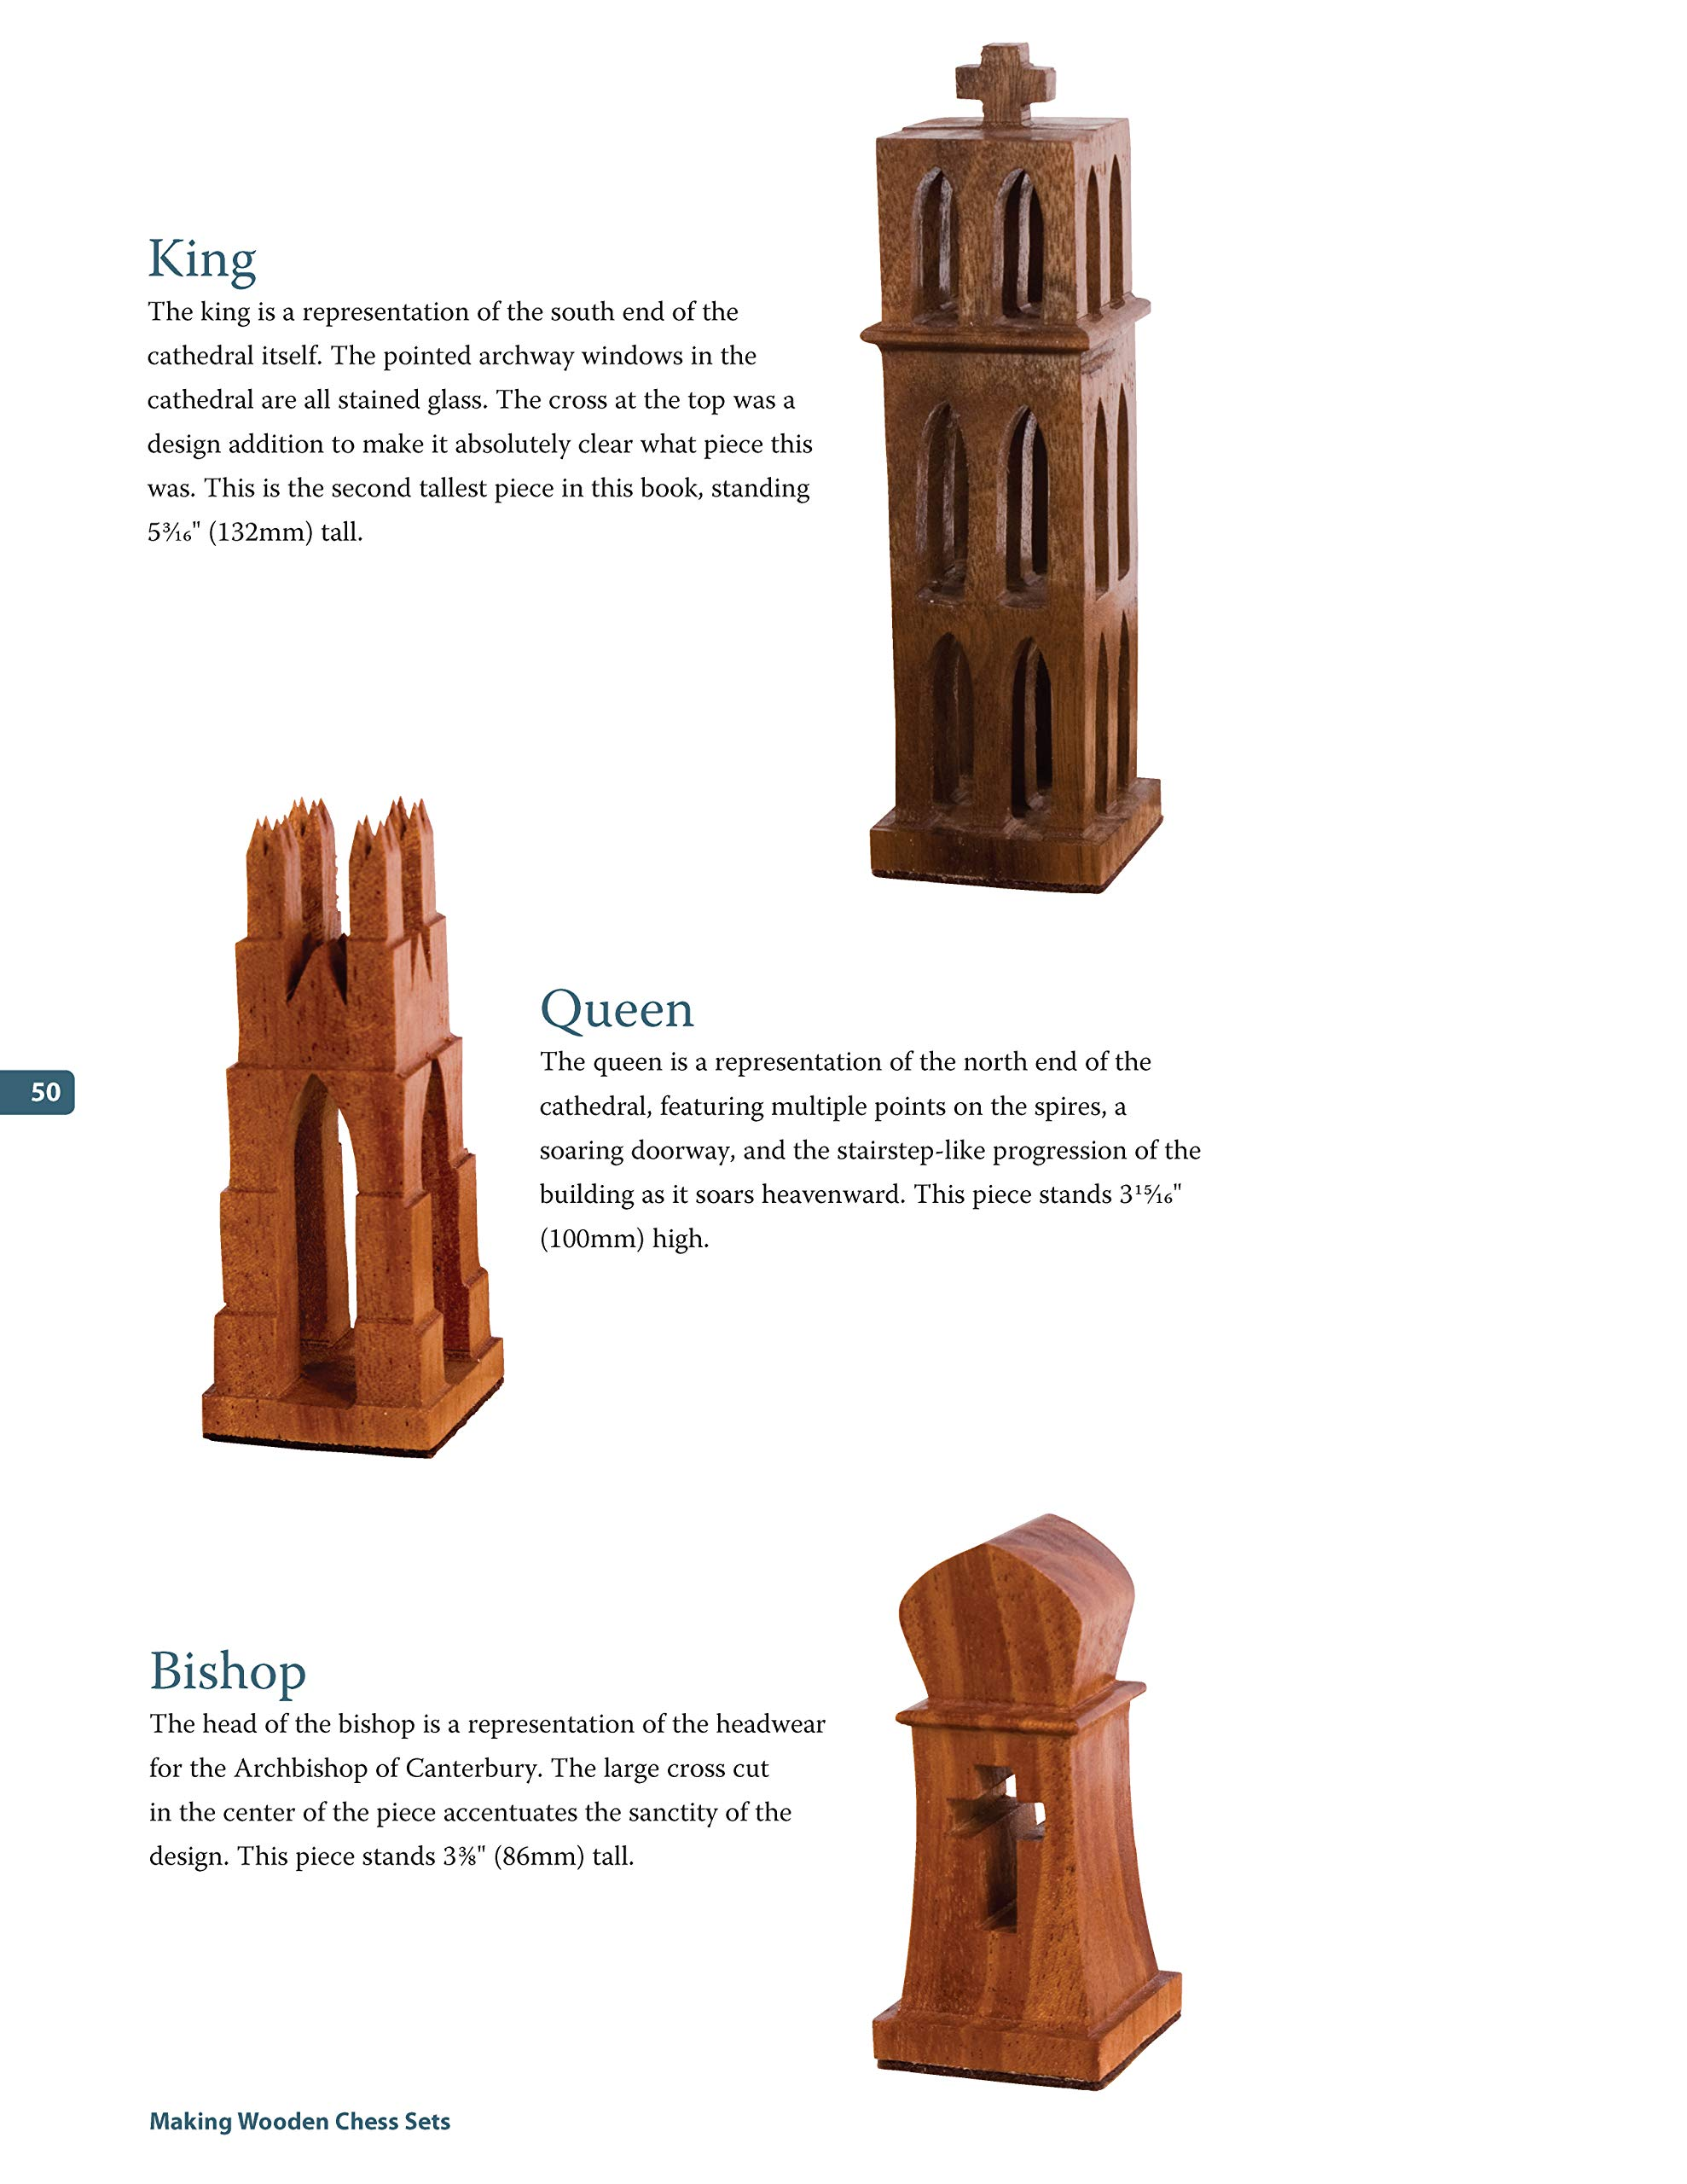 Making Wooden Chess Sets: 15 One-of-a-Kind Designs for the Scroll